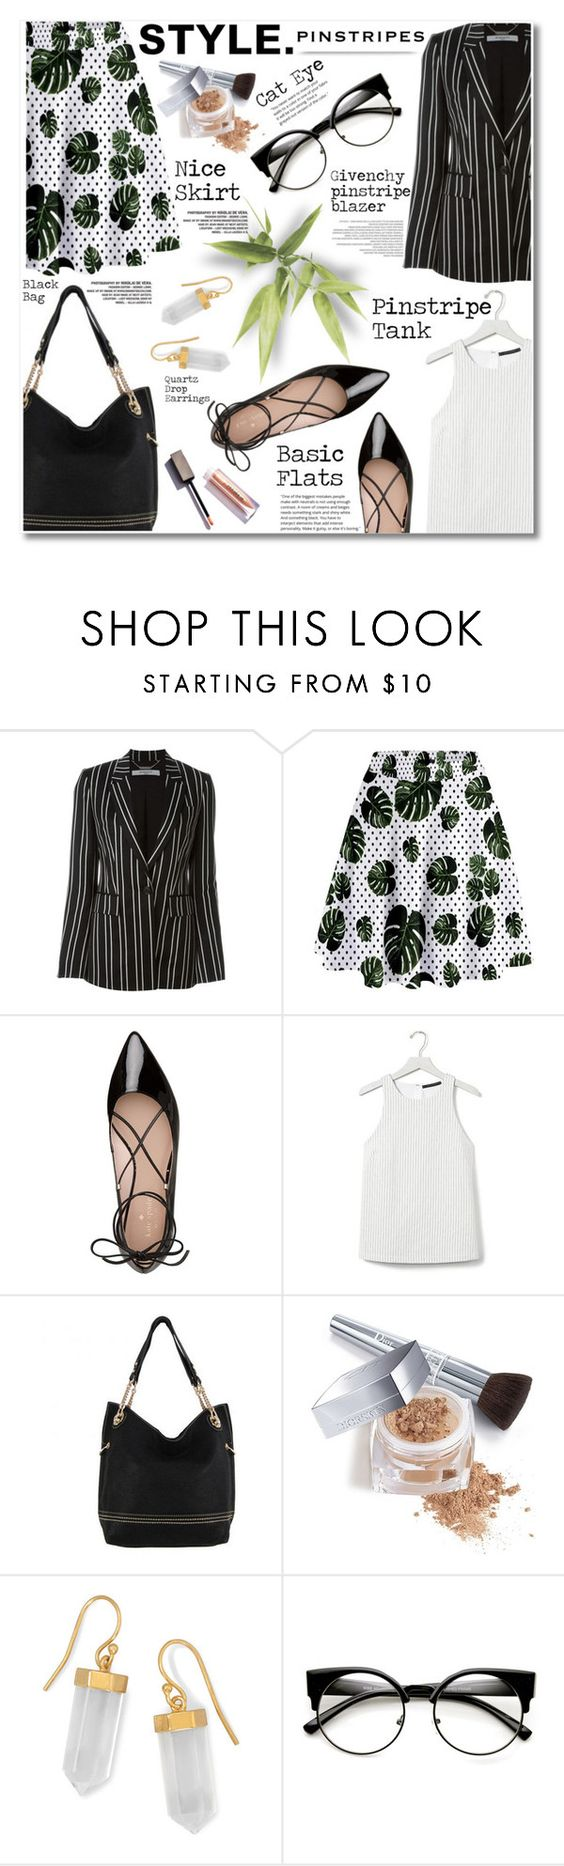 """09.08.16 Perfect Pinstripes"" by shirleipatricia ❤ liked on Polyvore featuring Givenchy, Kate Spade, Banana Republic, Christian Dior and BillyTheTree"